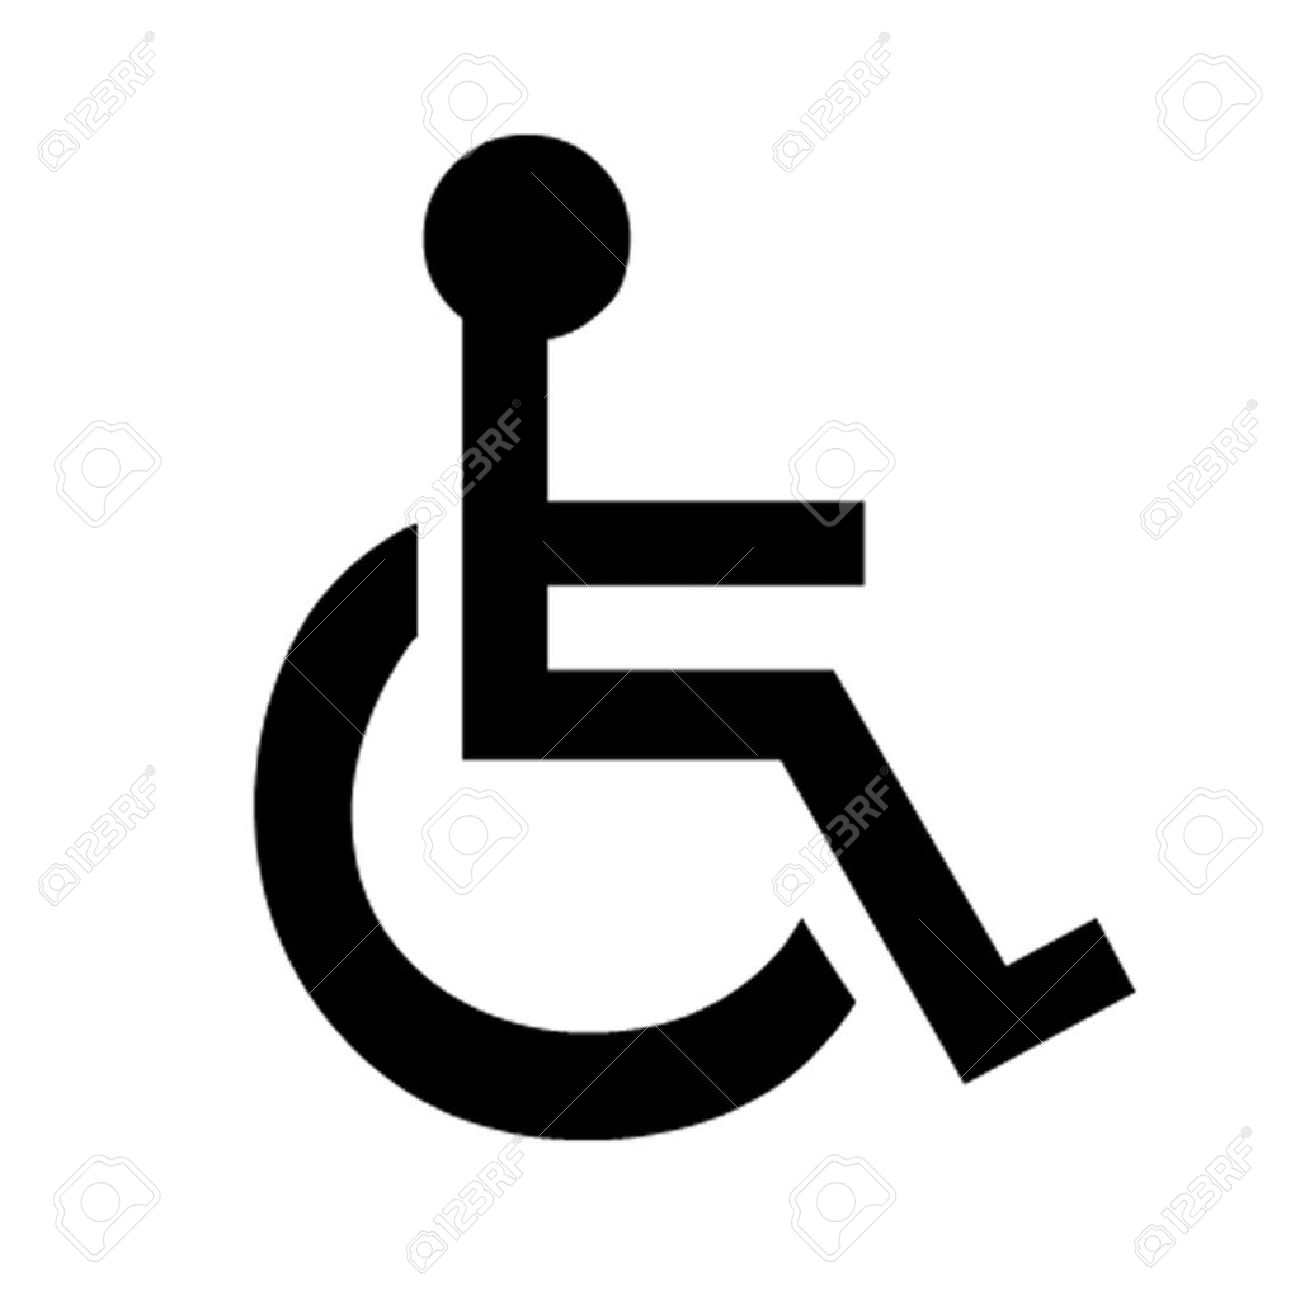 disabled wheelchair symbol royalty free cliparts vectors and stock rh 123rf com disable logon banner disable logon password